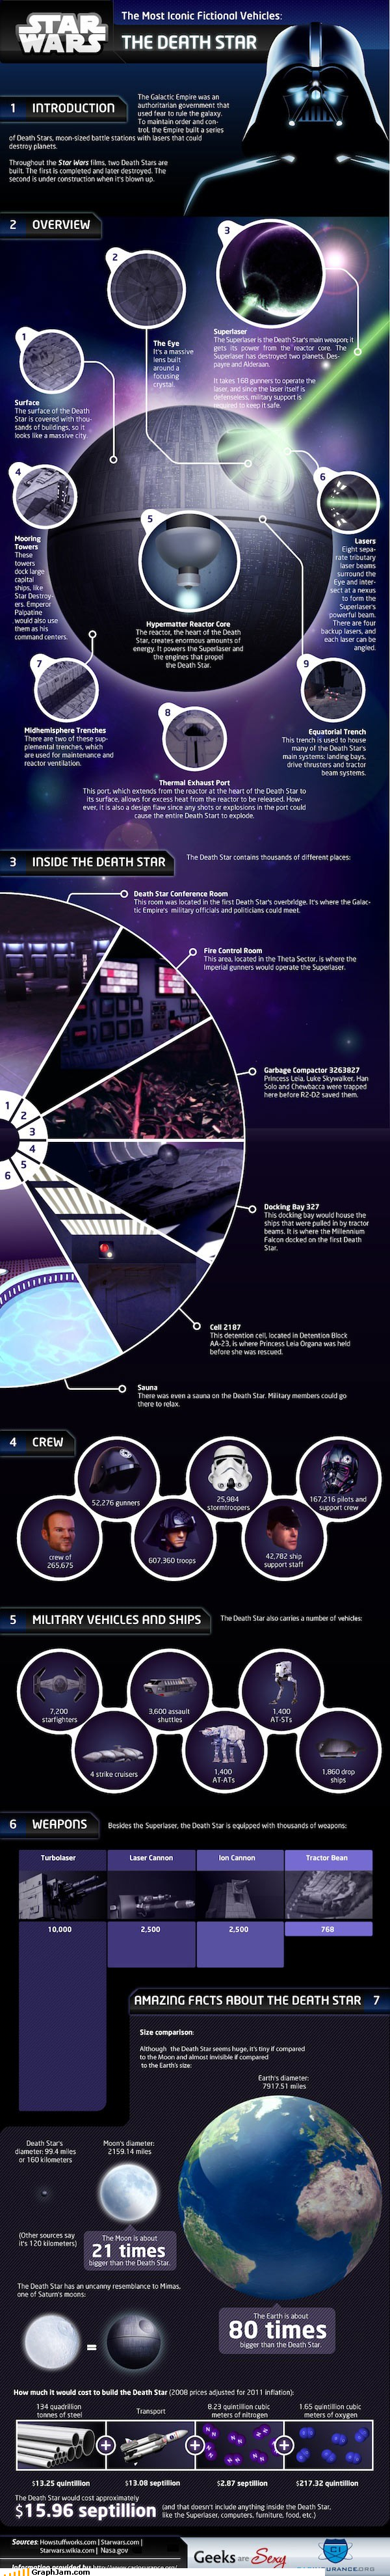 darth vader Death Star facts infographic movies nutshell space star wars - 4518510080